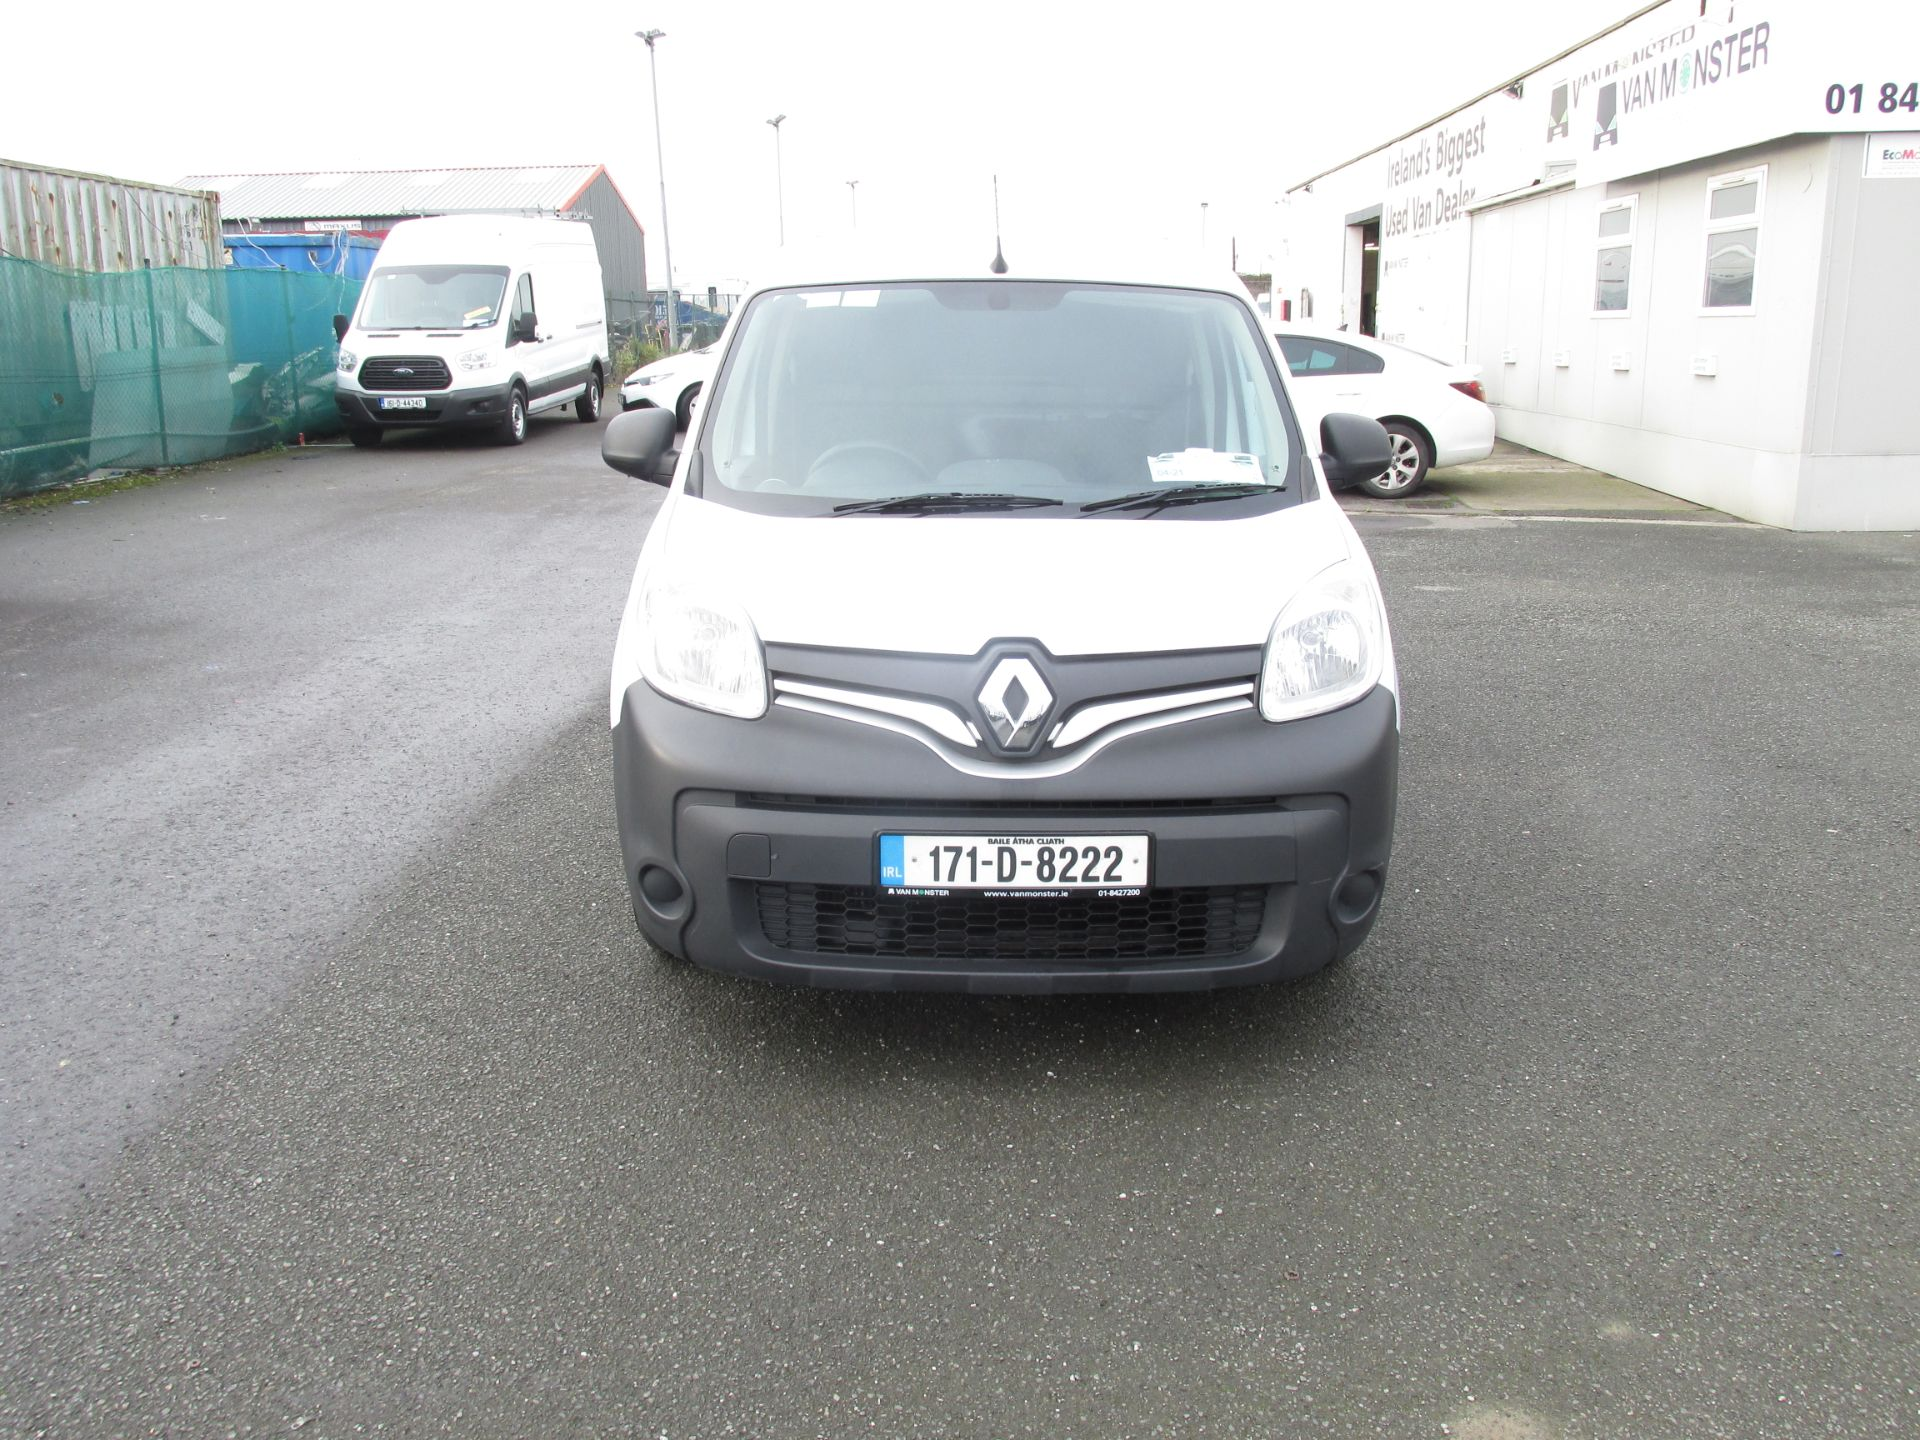 2017 Renault Kangoo ML19 ENERGY DCI 75 BUSINESS 2D click and collect call sales for more info (171D8222) Image 2